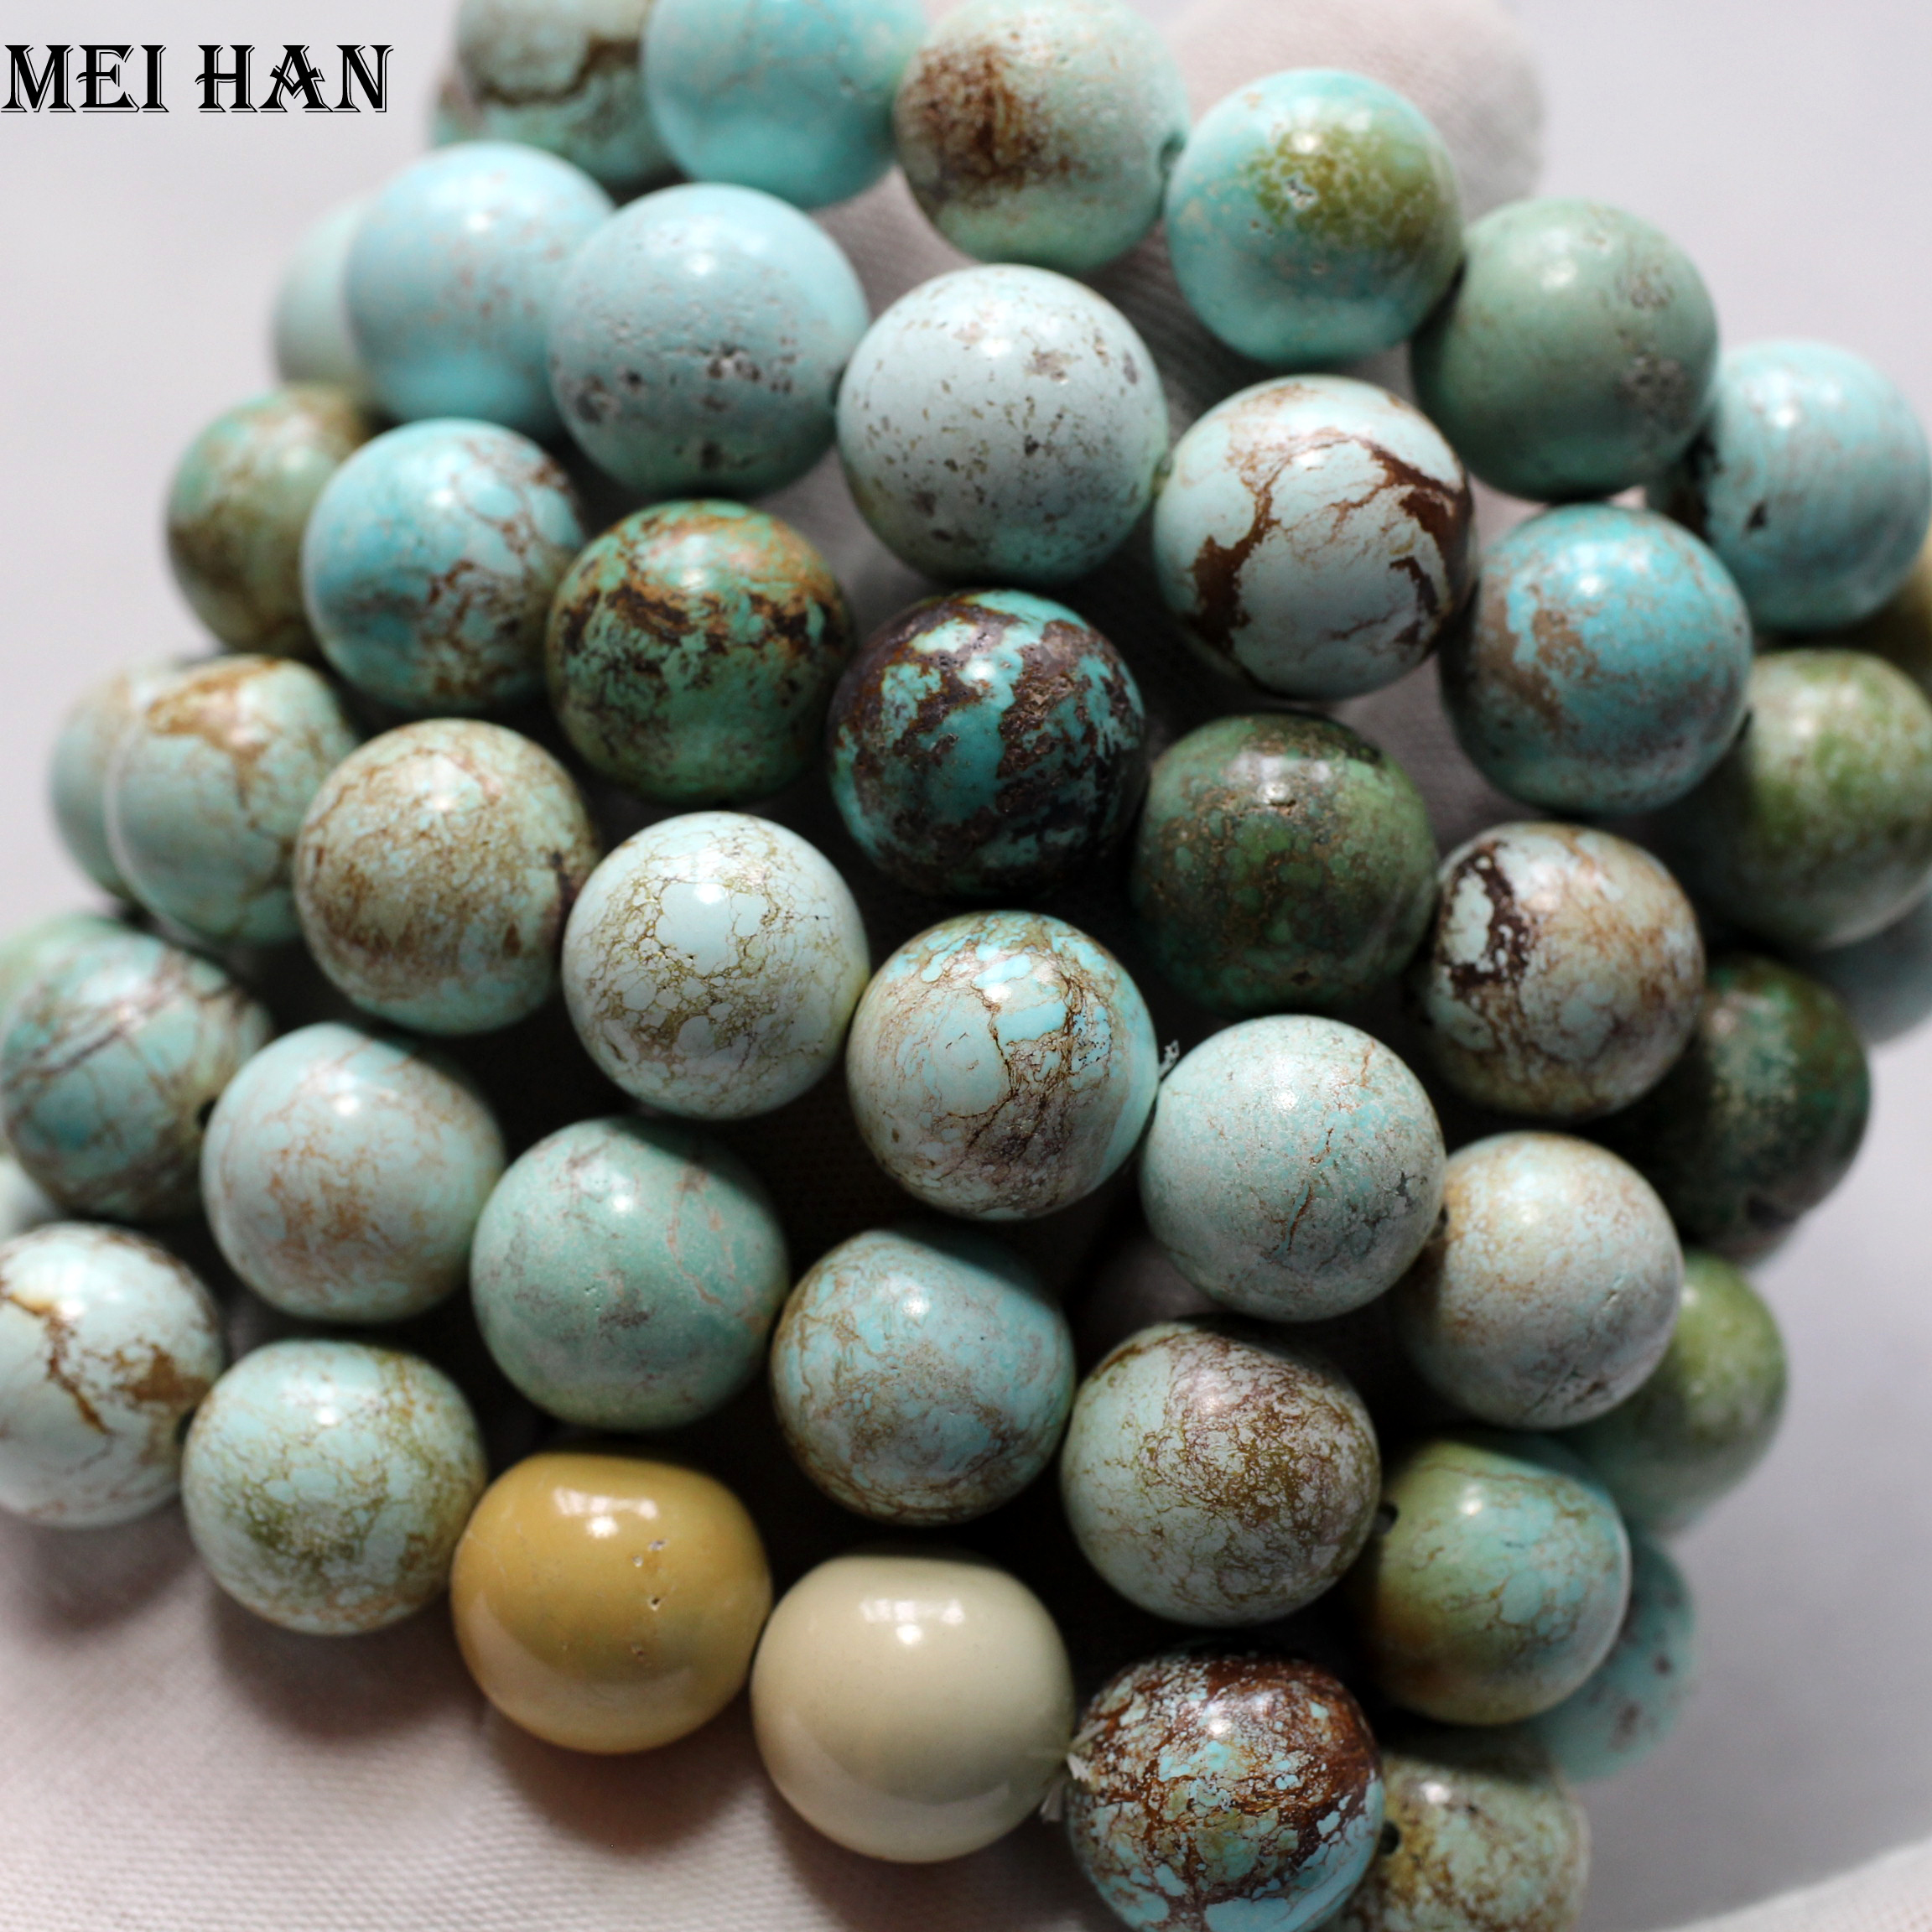 Meihan wholesale 13 13.5mm (14 beads/37g/set) rare Natural Hubei Turquoisee untreated ore biriuza stone for jewelry making-in Beads from Jewelry & Accessories    1